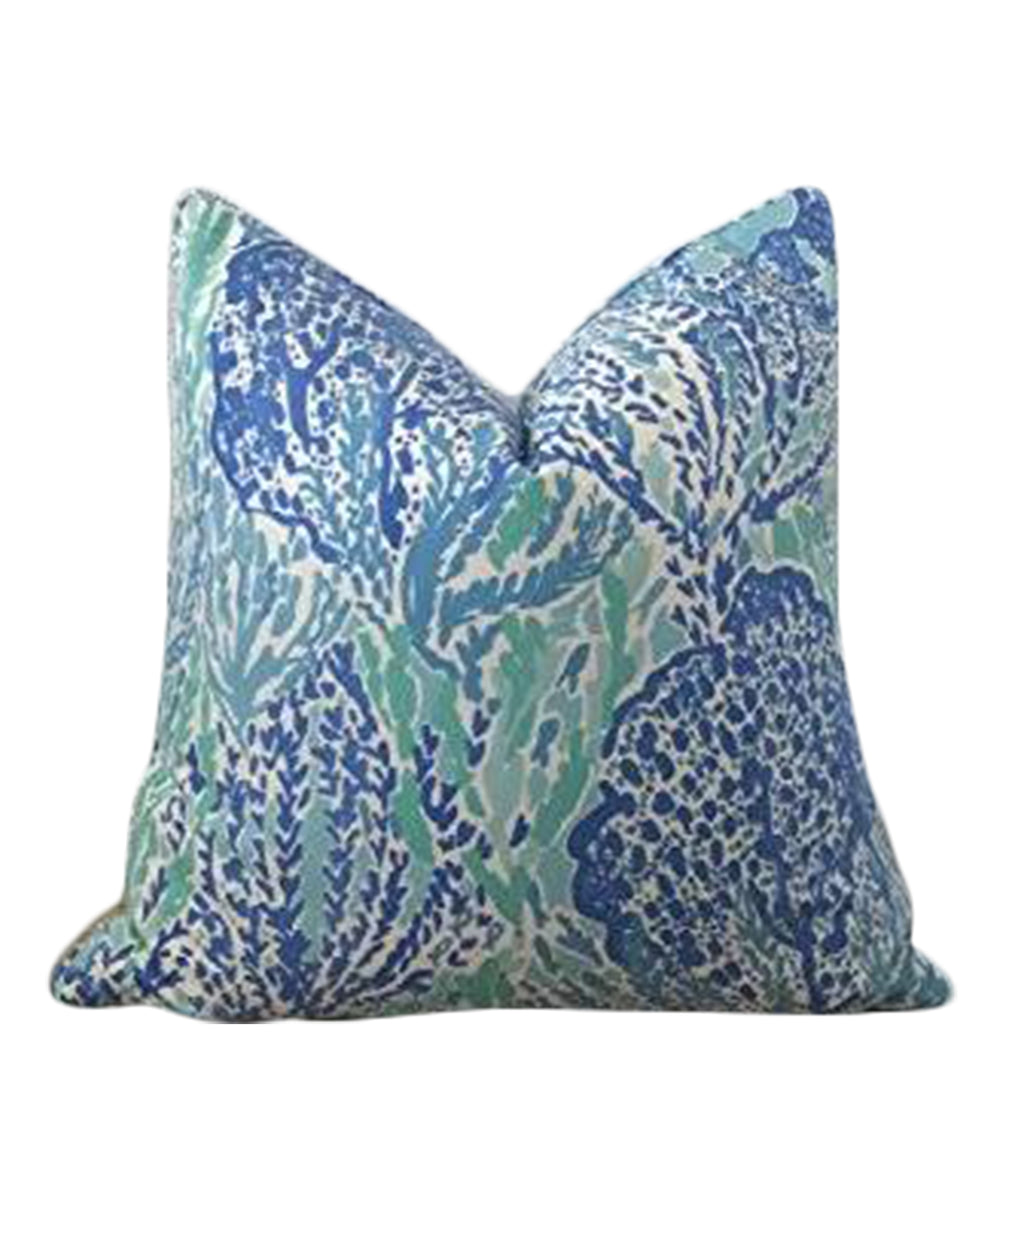 Lilly Pulitzer Coral Reef Let's Cha Cha fabric pillow cover Lilly and Co.